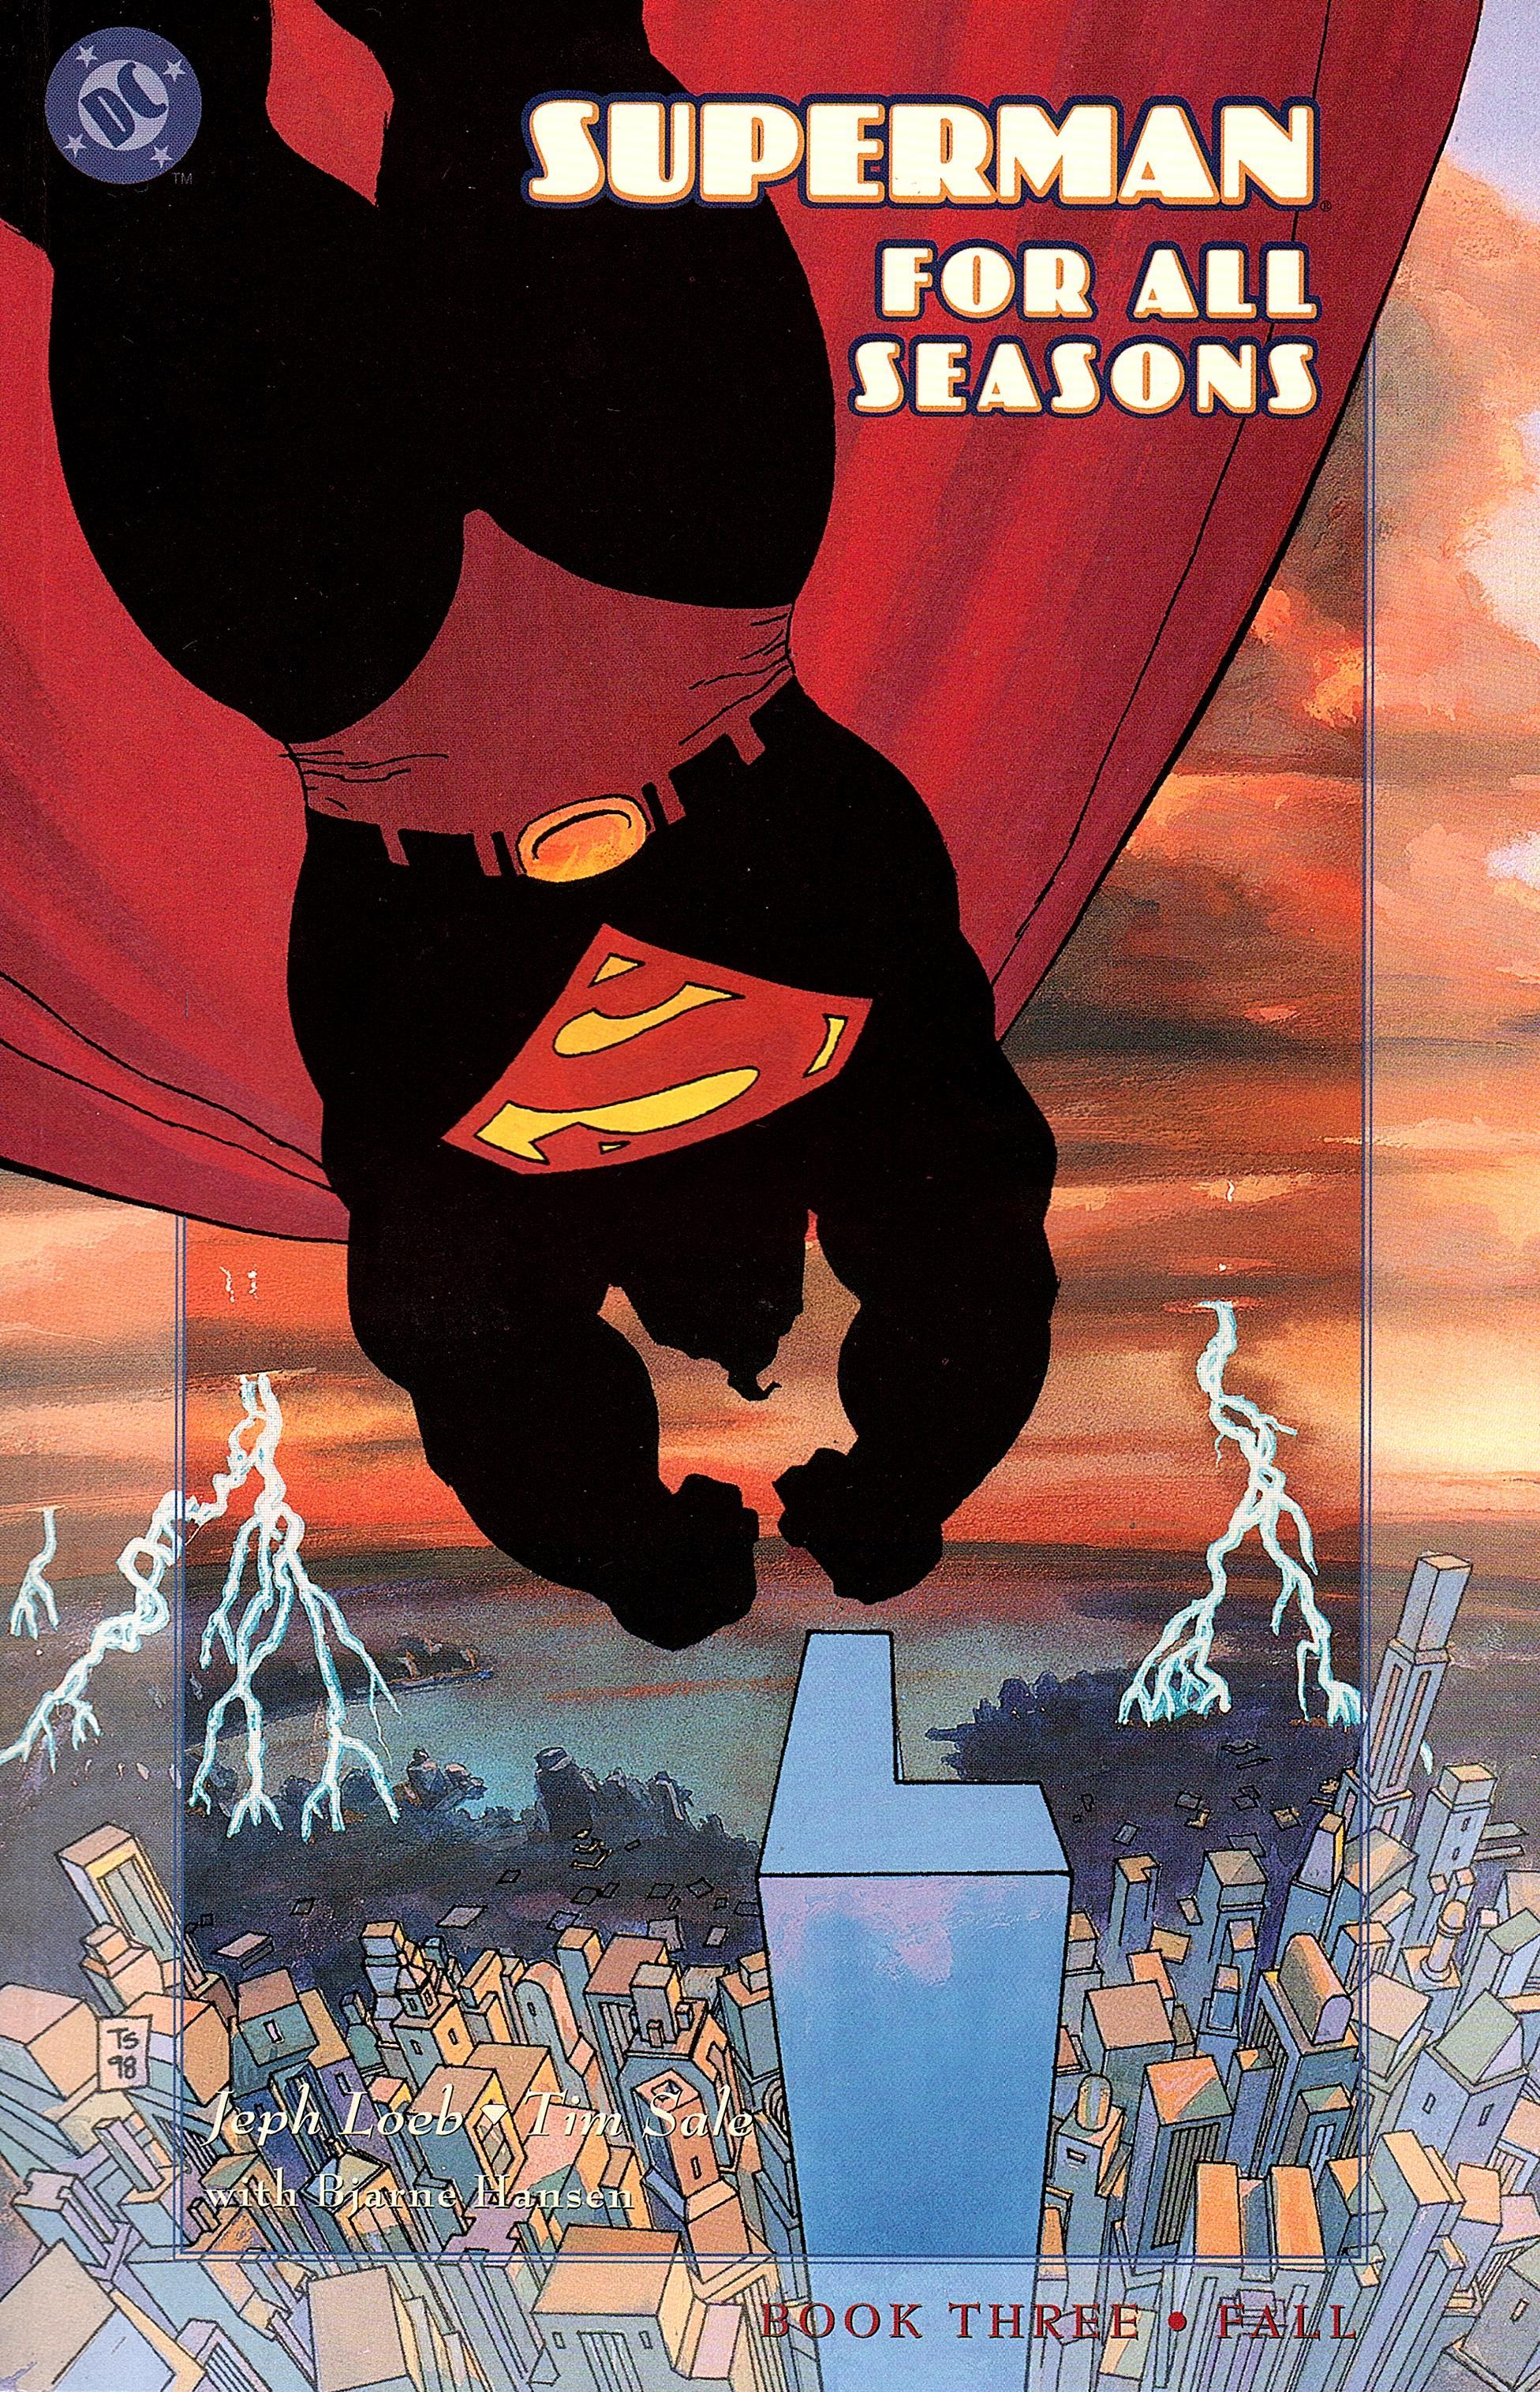 Superman: For All Seasons #3